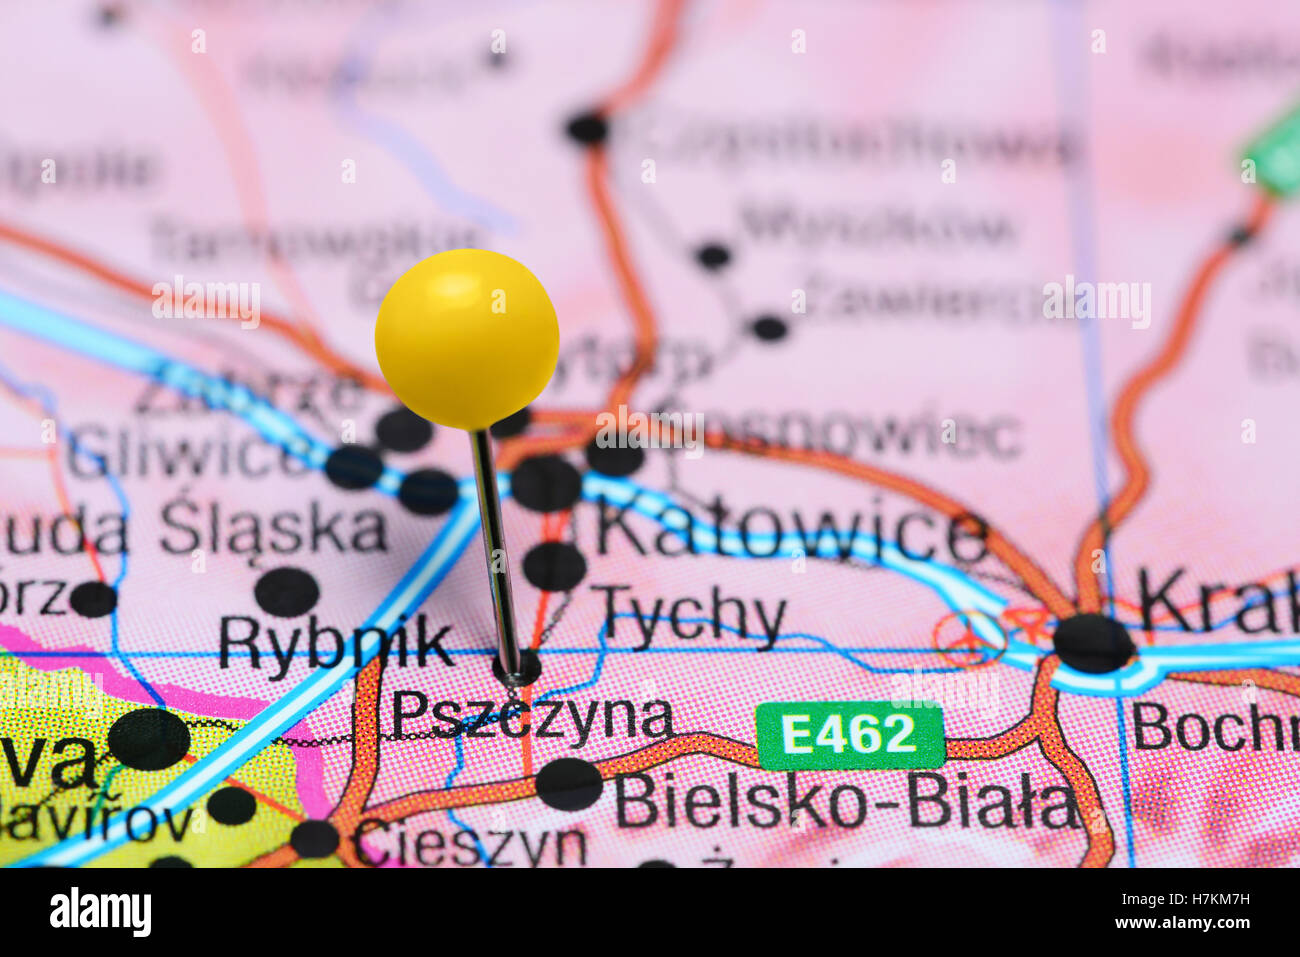 Pszczyna pinned on a map of Poland - Stock Image